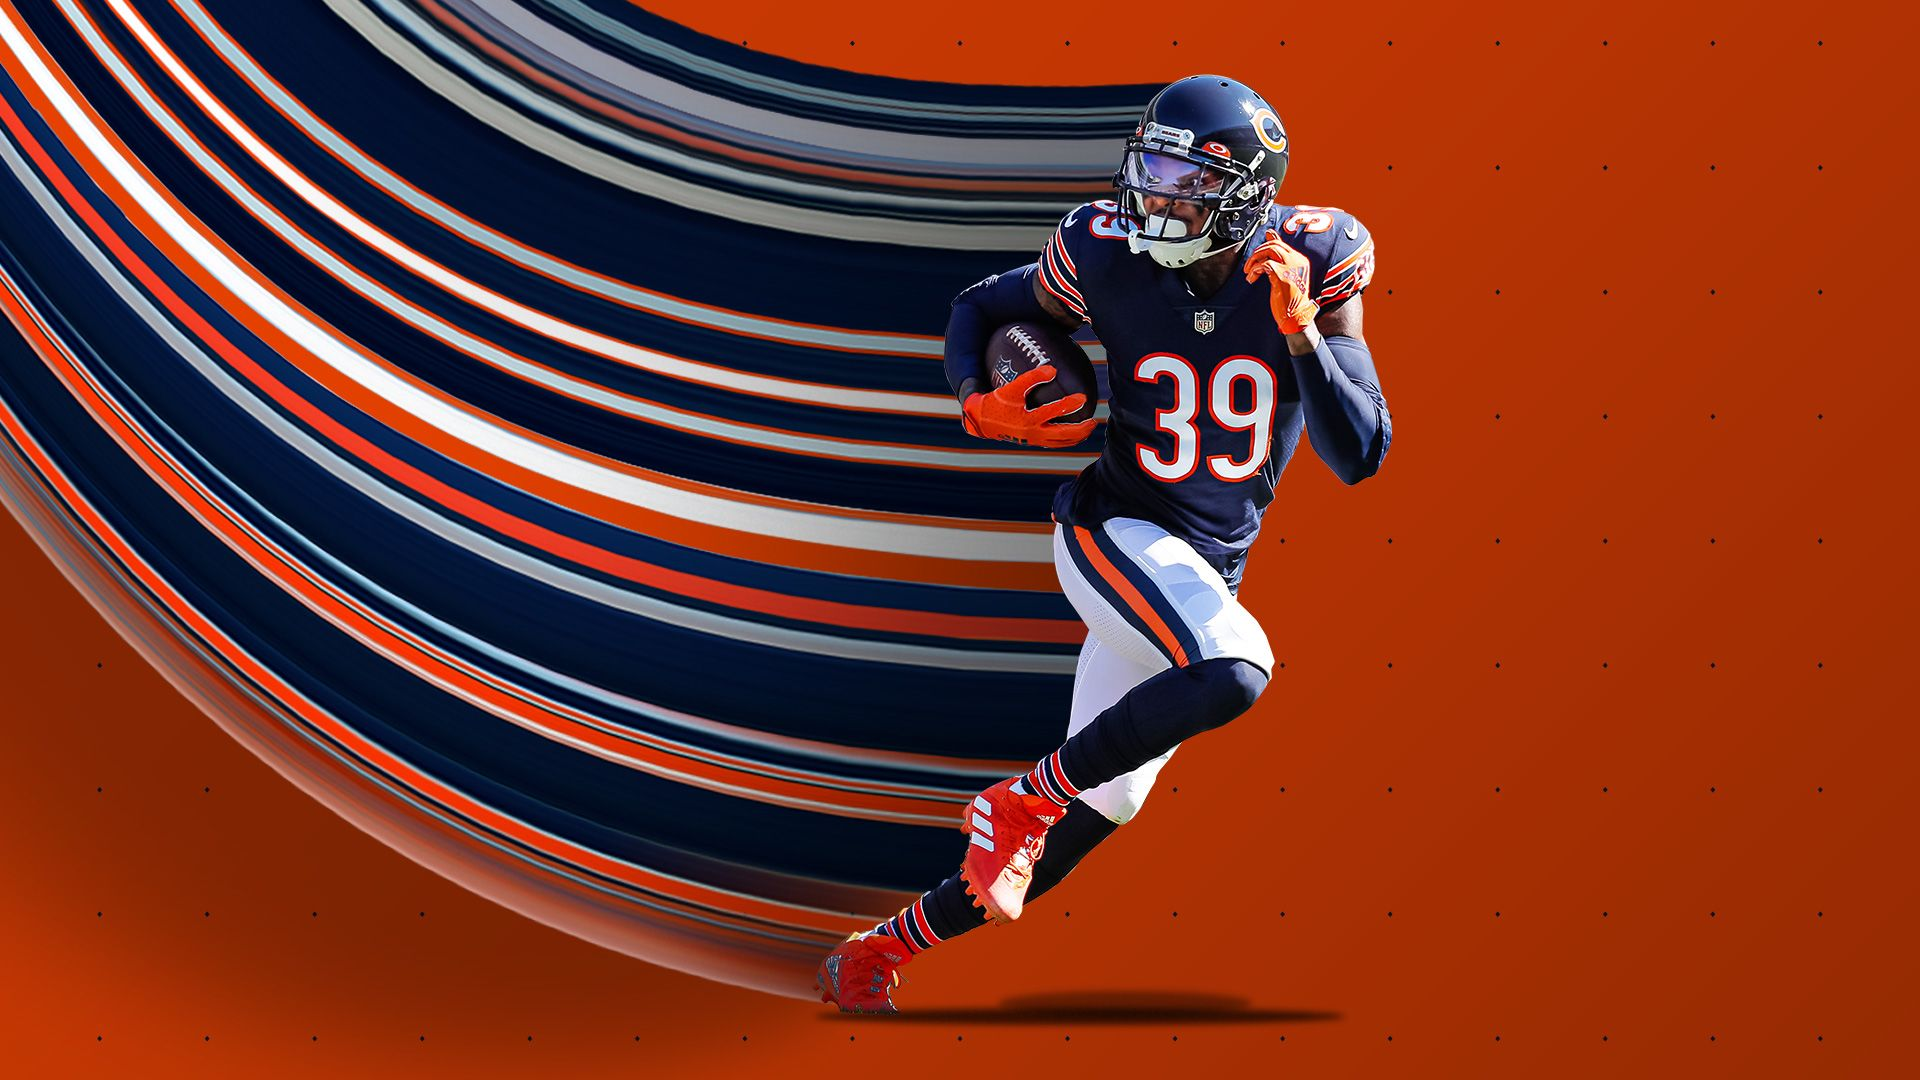 Wallpapers Chicago Bears Official Website